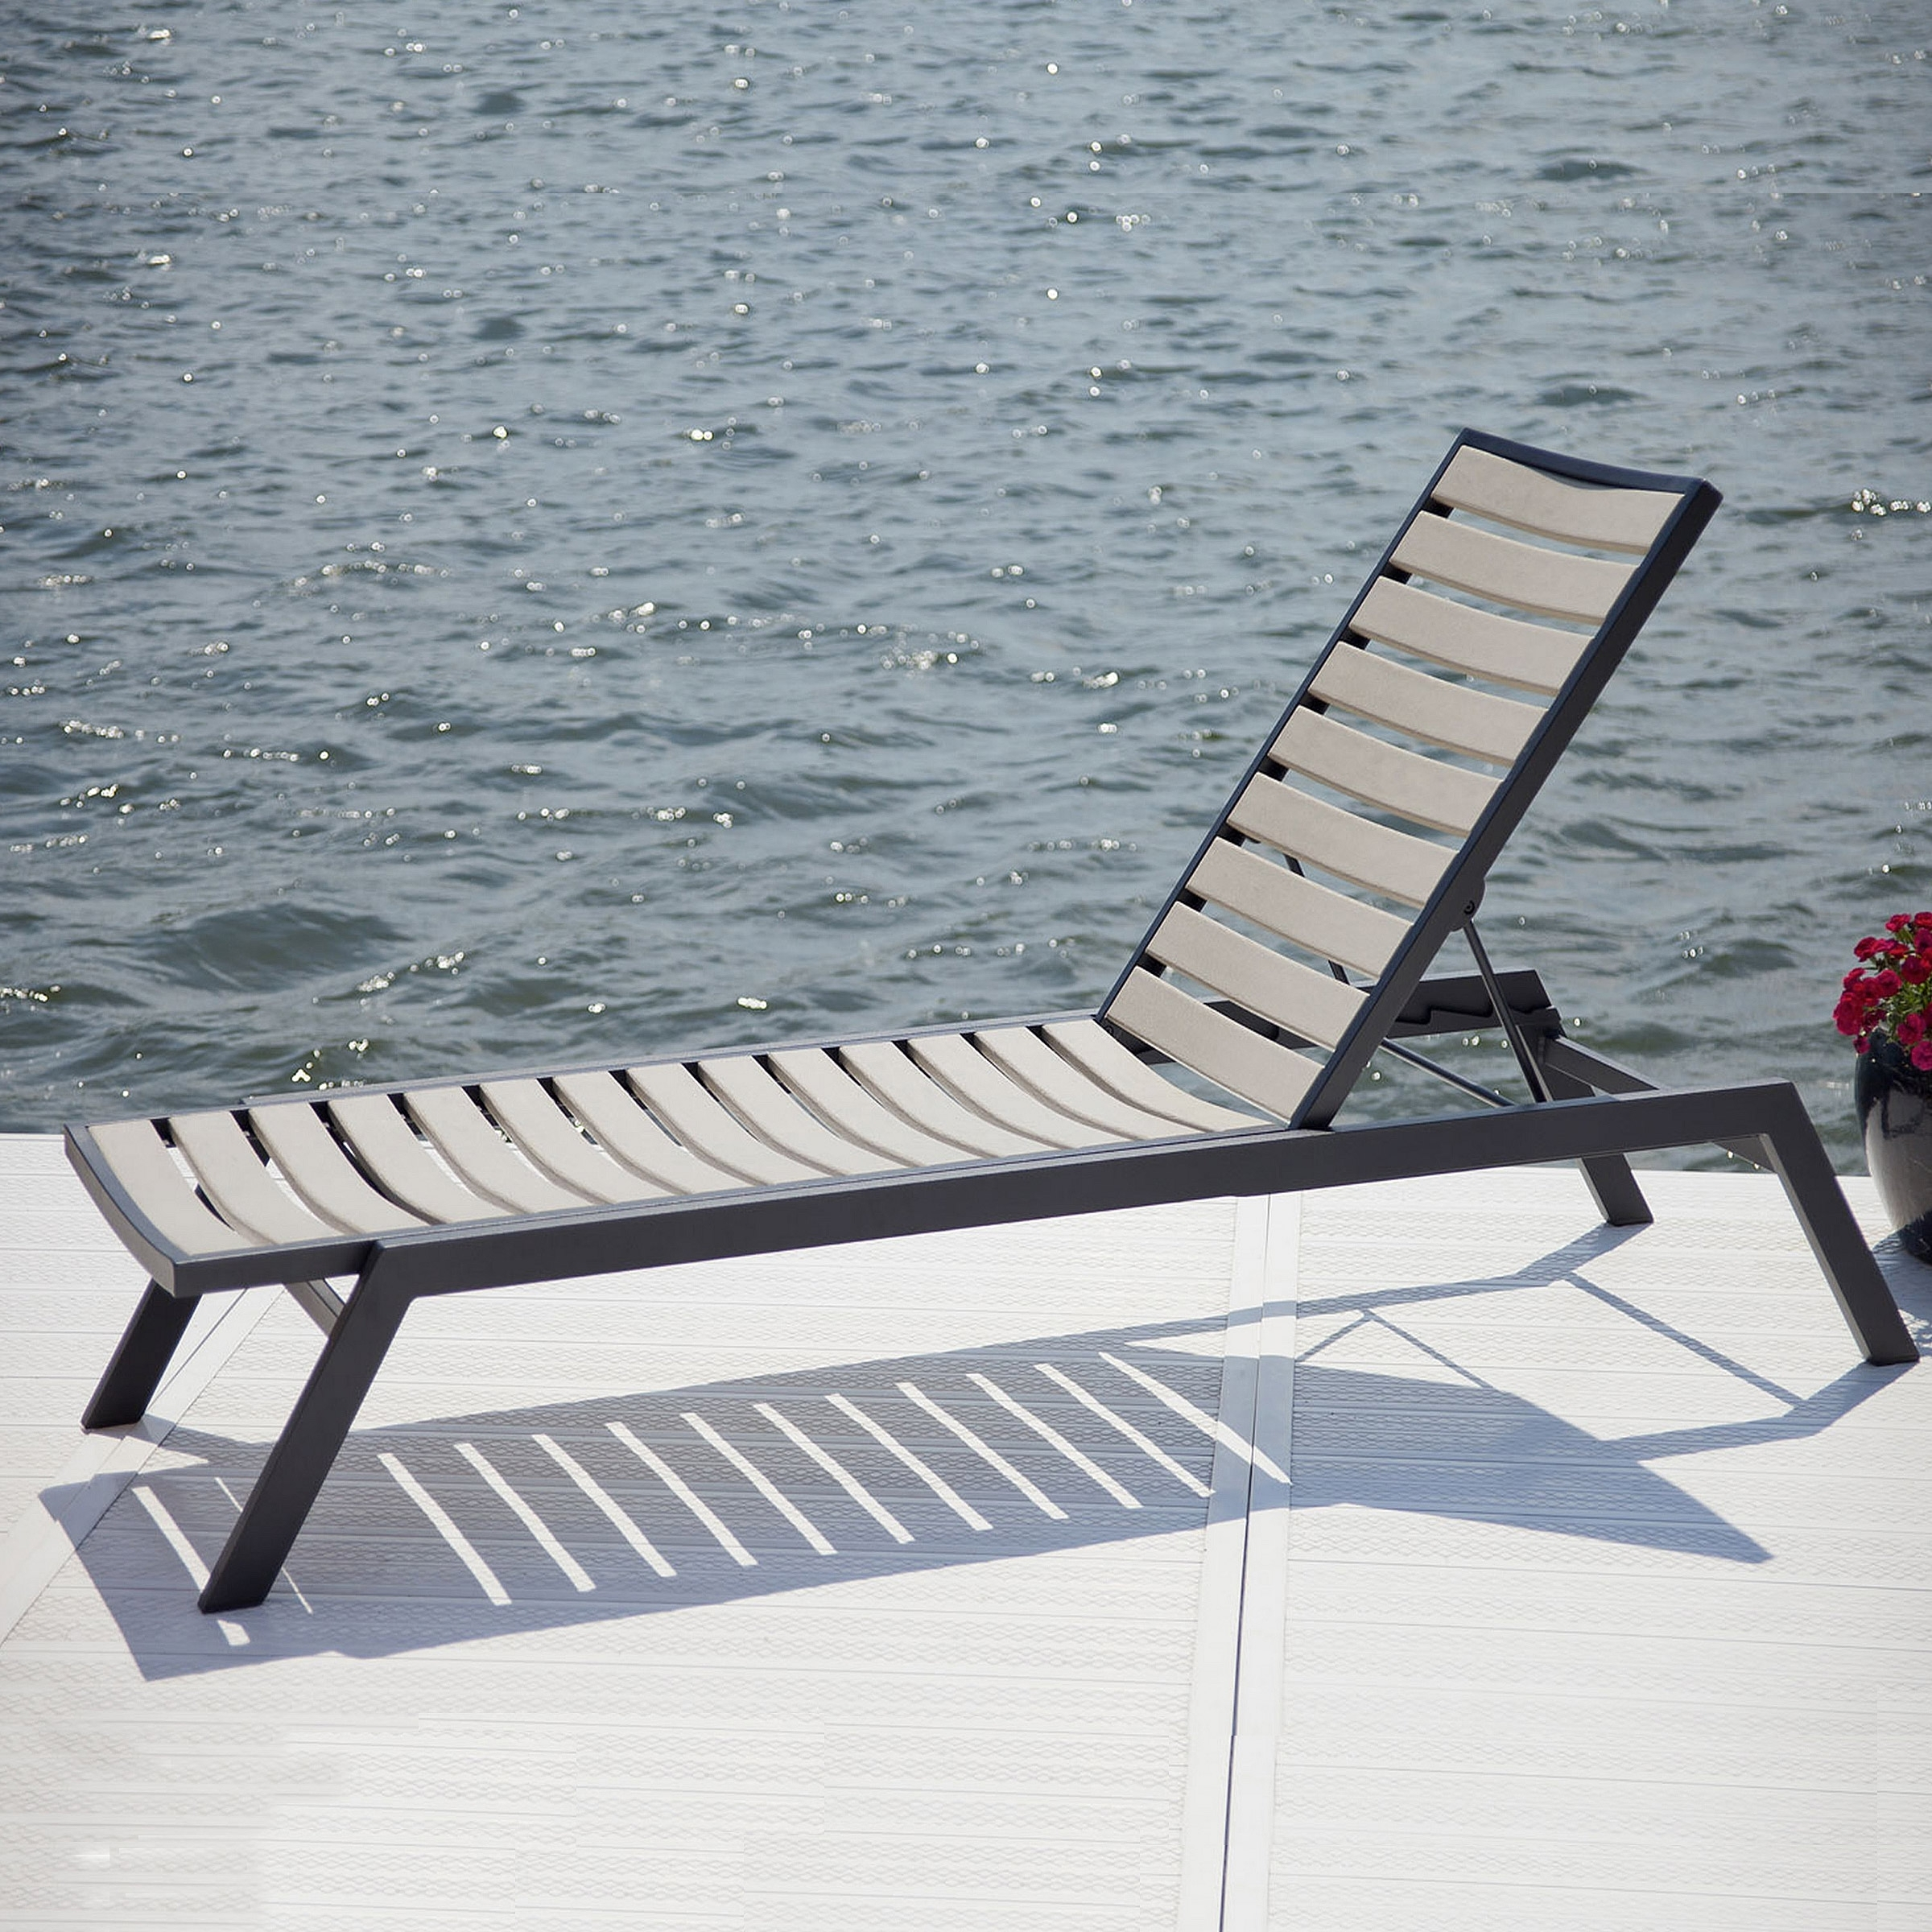 Polywood Euro Chaise Lounge Intended For Latest Polywood Chaise Lounges (View 12 of 15)